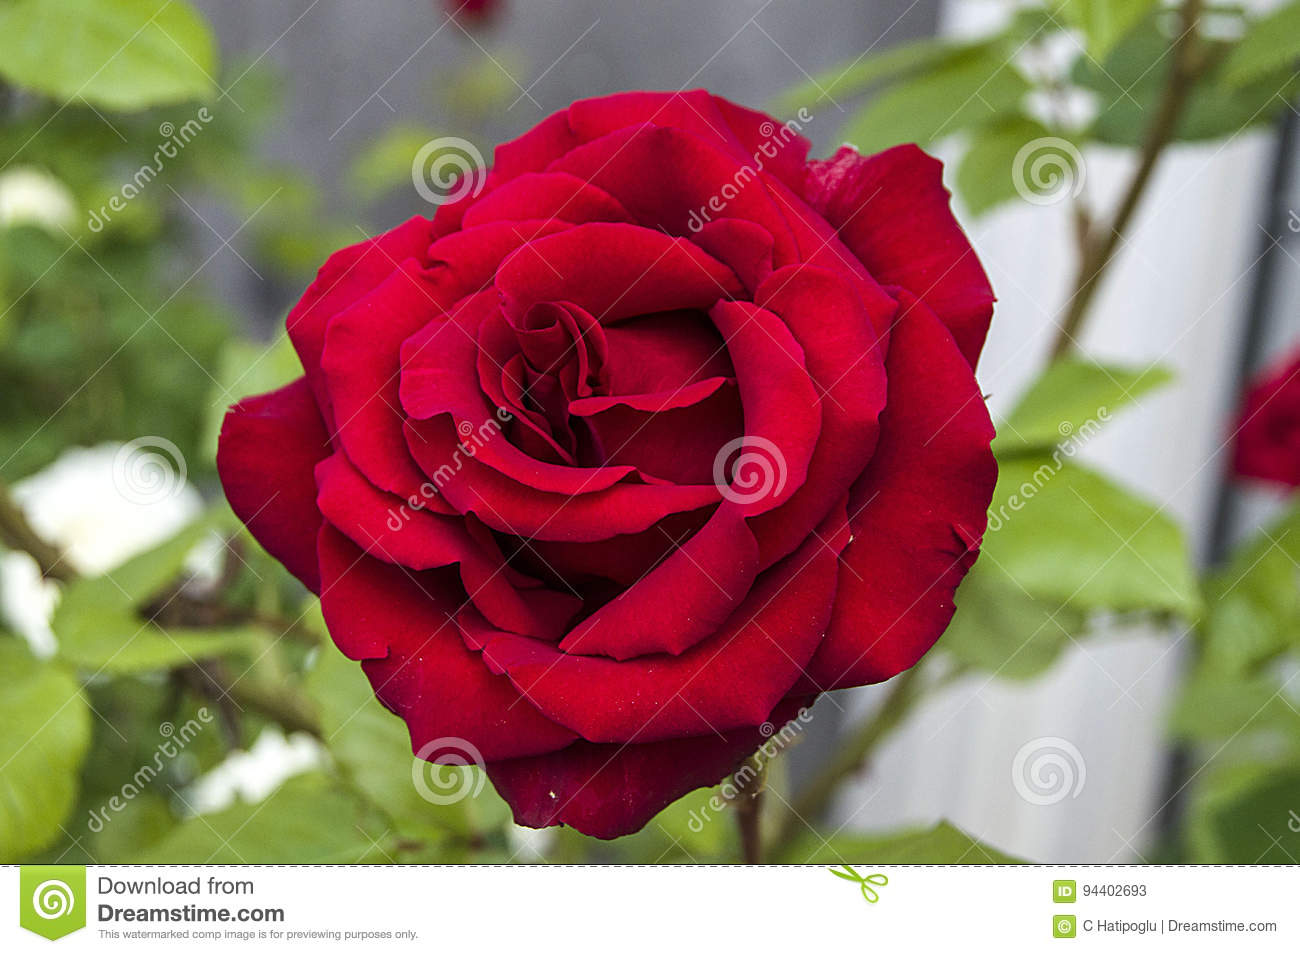 Love Garden Roses: Roses, Love Symbol Roses, Red Roses For Lovers Day